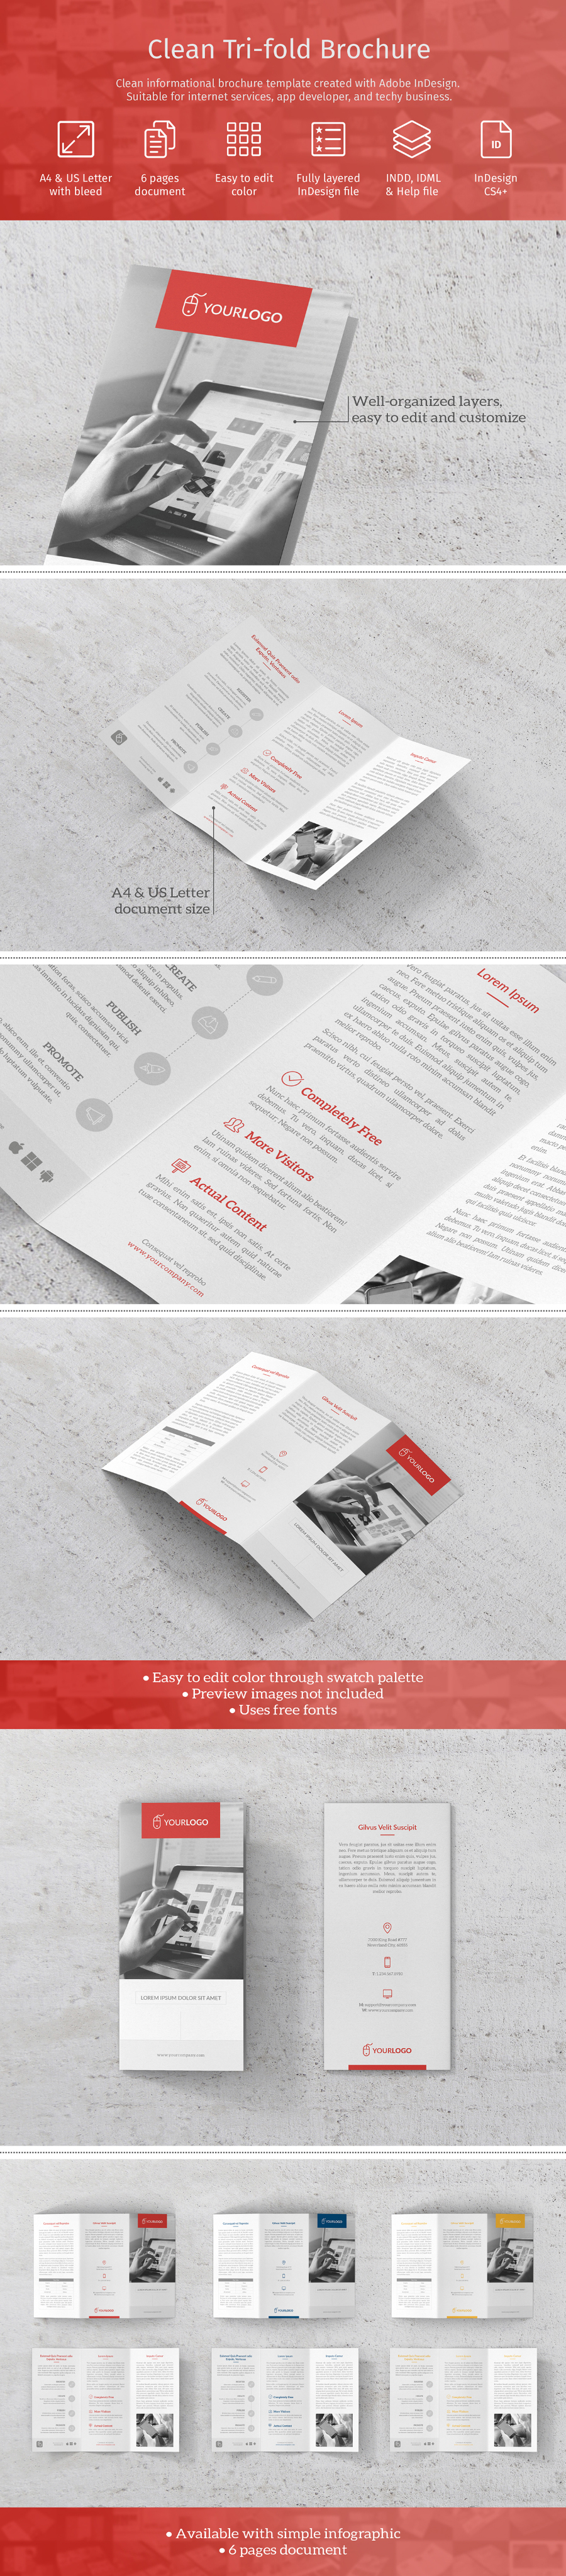 Free Clean Trifold Brochure Template Free Design Resources - Free indesign tri fold brochure templates